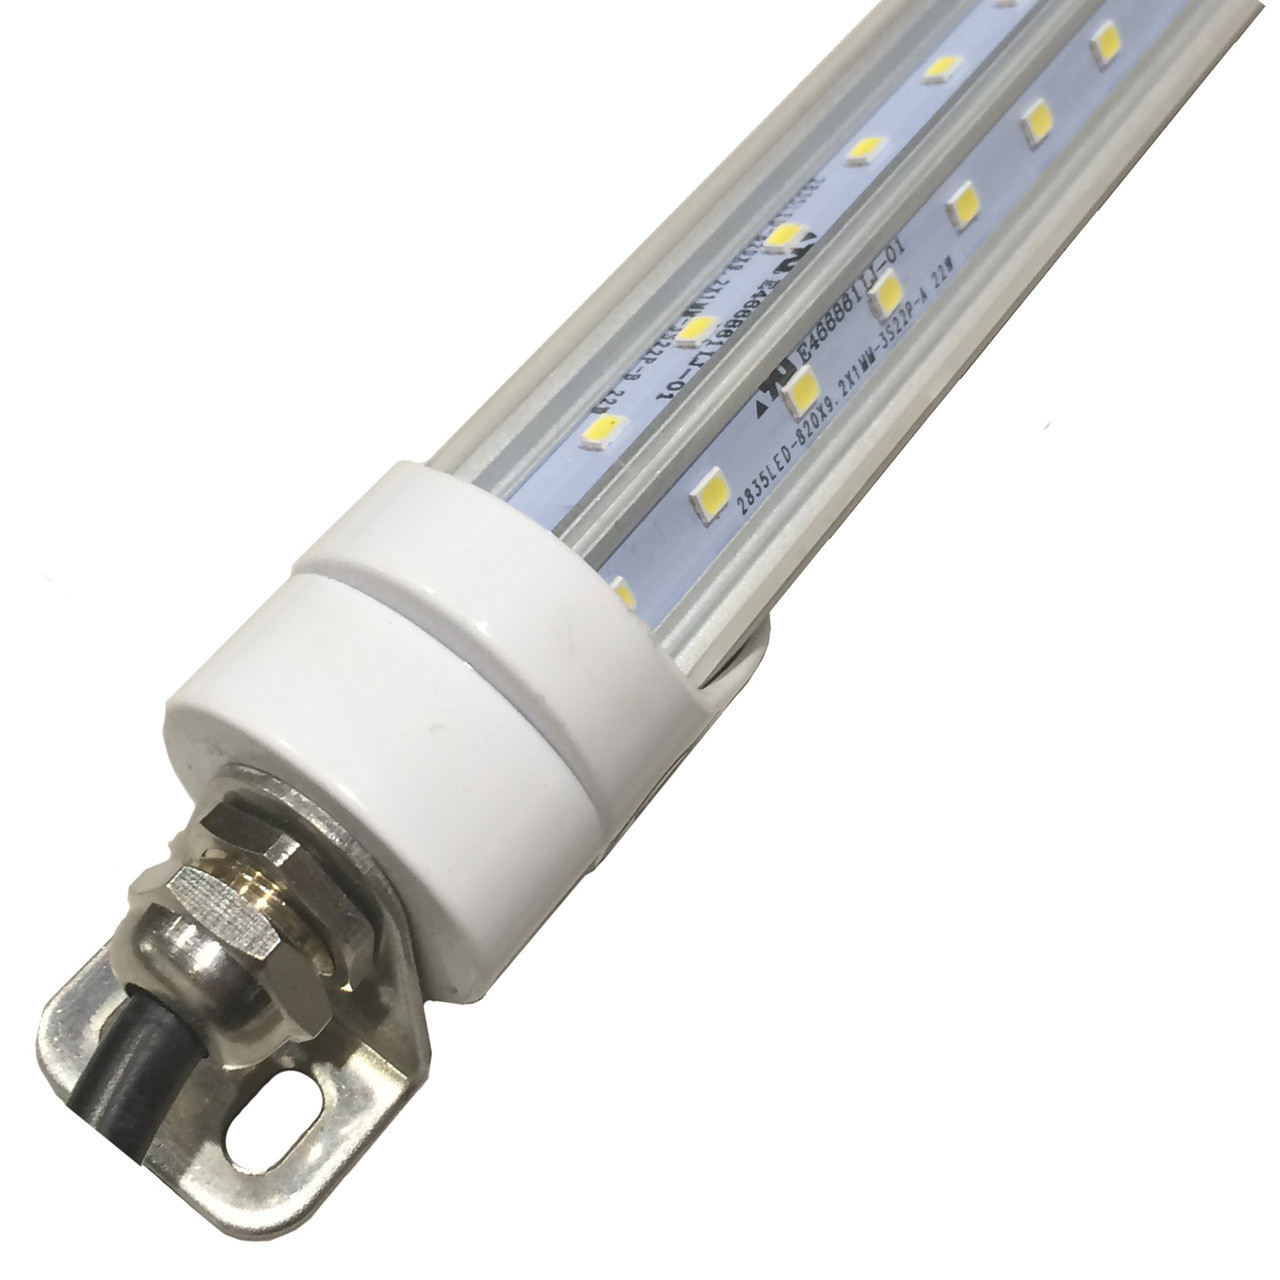 Led T8 Tube 4 Foot T8 Led Freezer Cooler Tube Led Global Supply